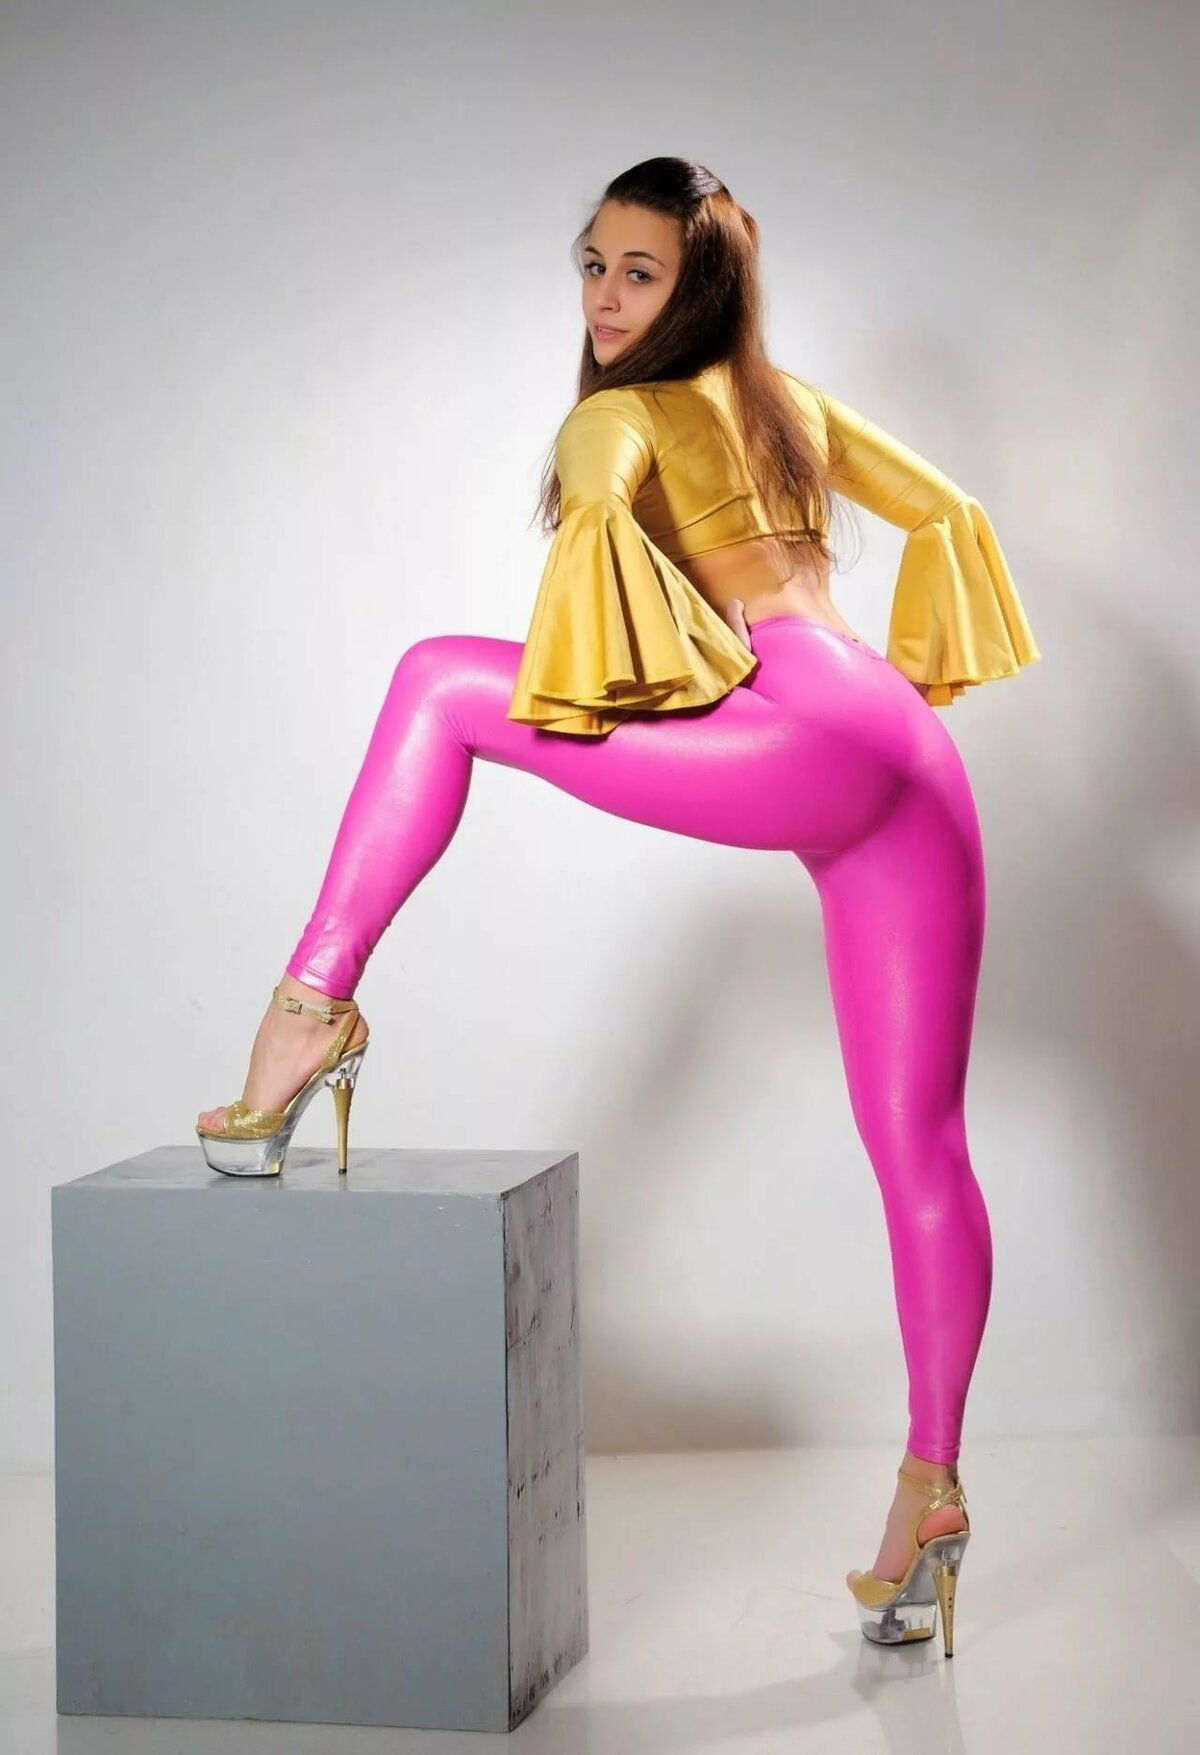 girls-in-spandex-gallery-penis-with-naked-girl-having-sex